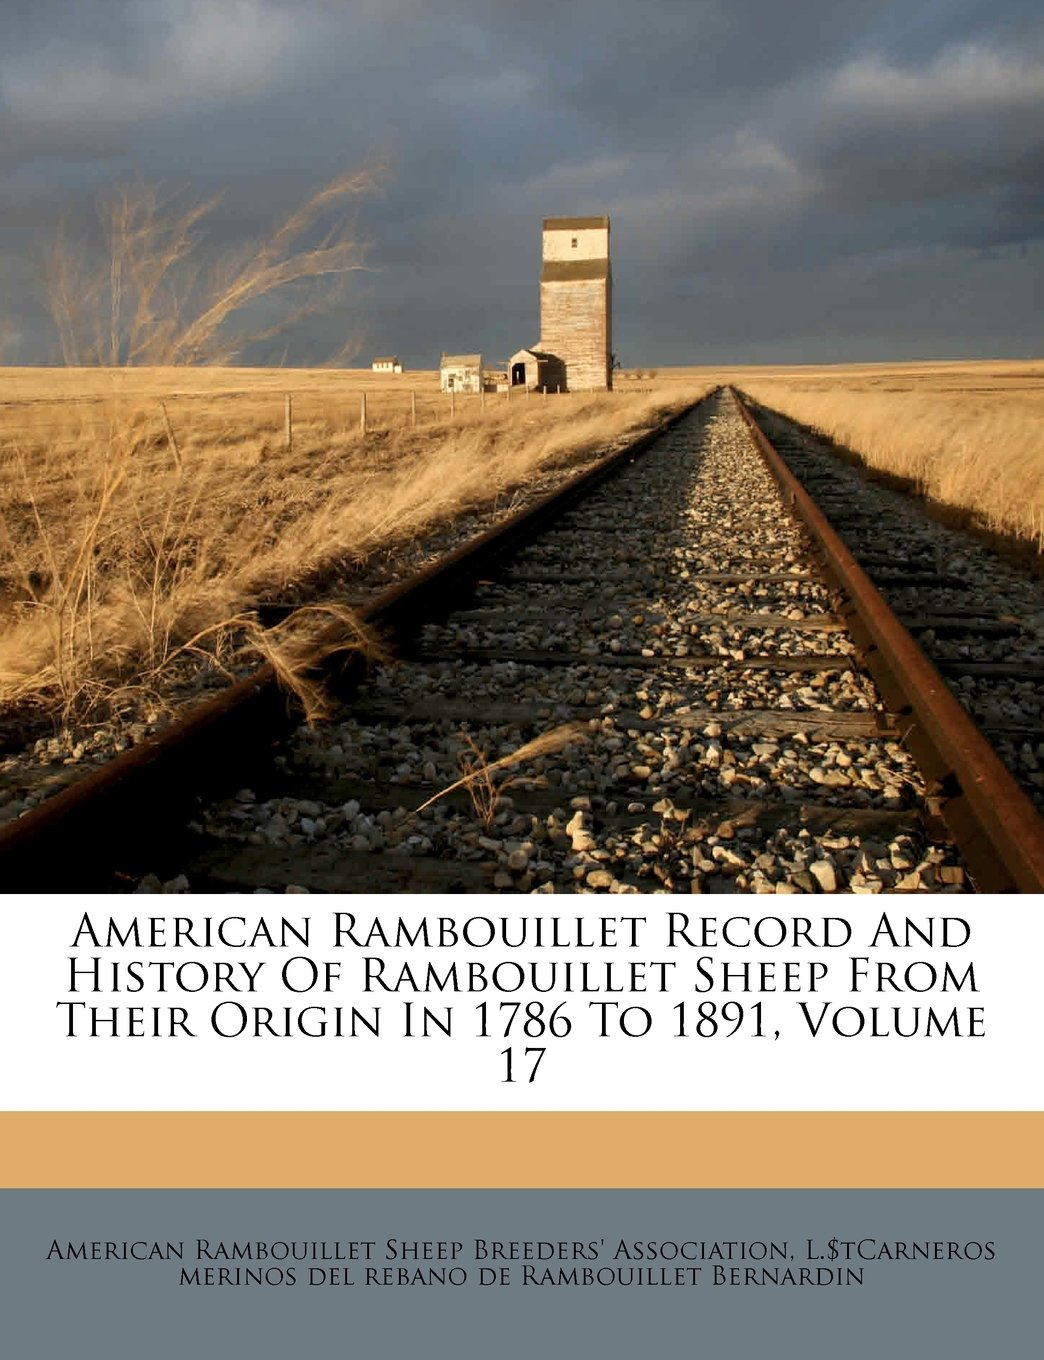 Download American Rambouillet Record And History Of Rambouillet Sheep From Their Origin In 1786 To 1891, Volume 17 pdf